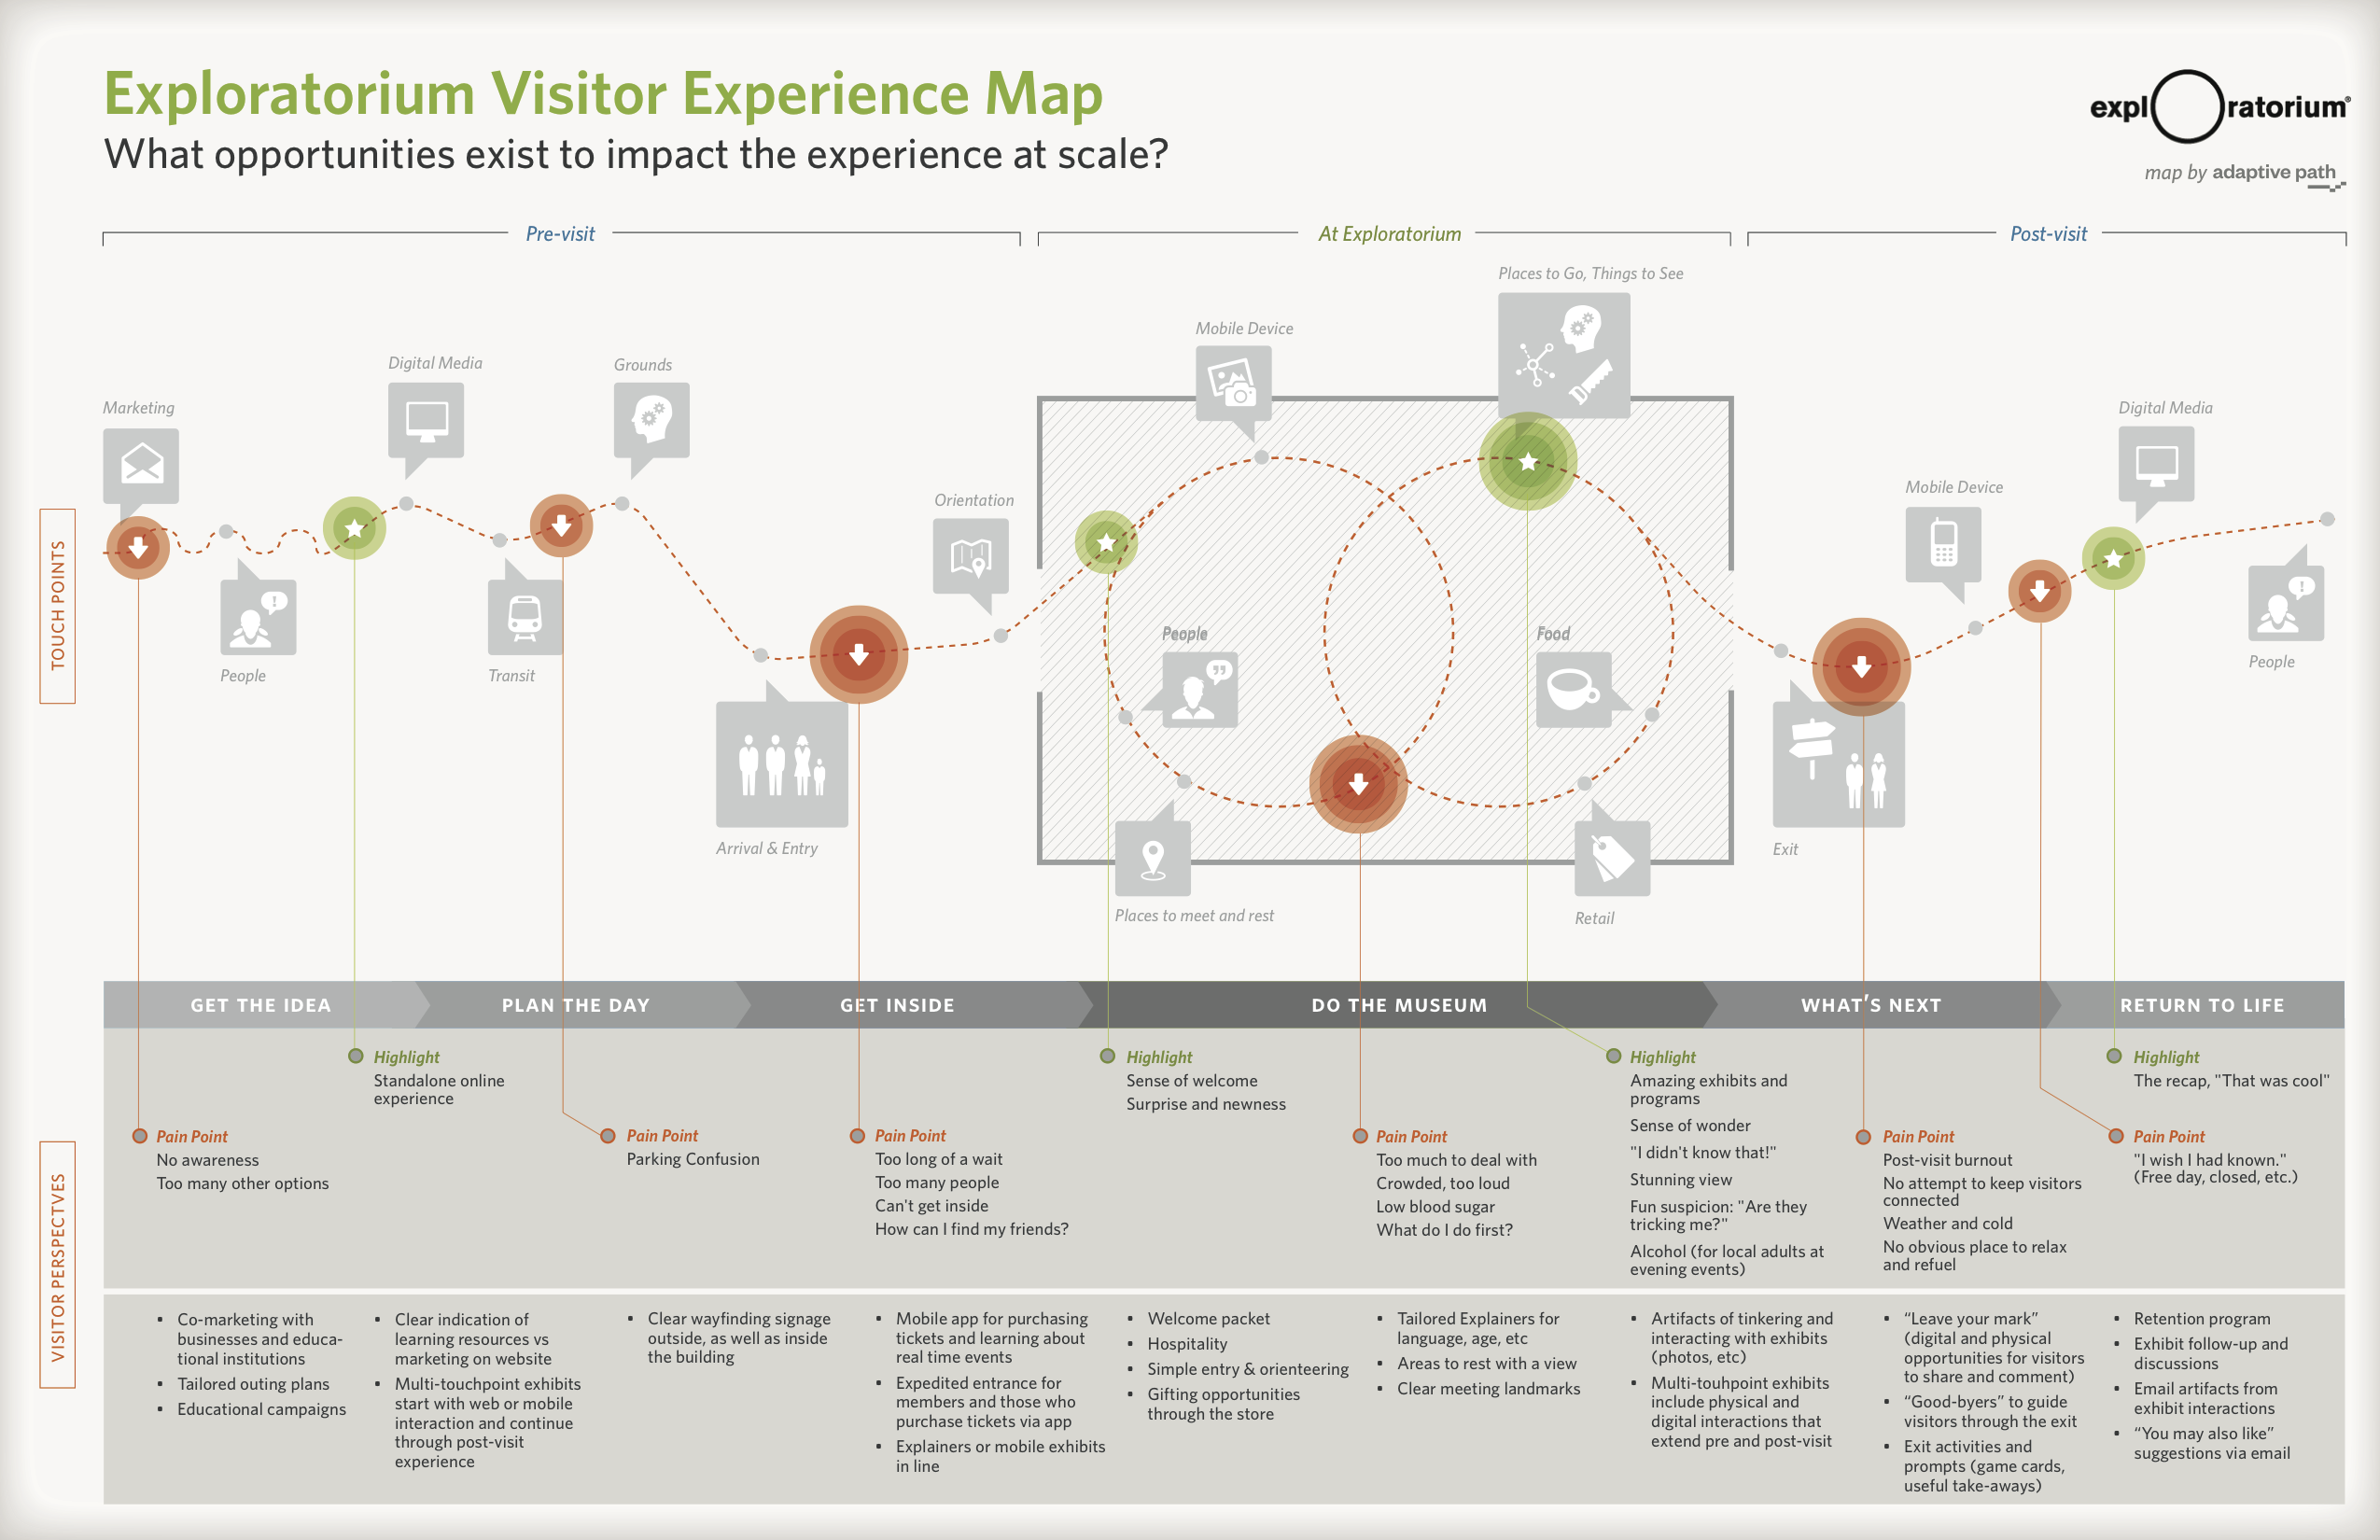 17 Best images about User Journey on Pinterest | Museums, Timeline ...